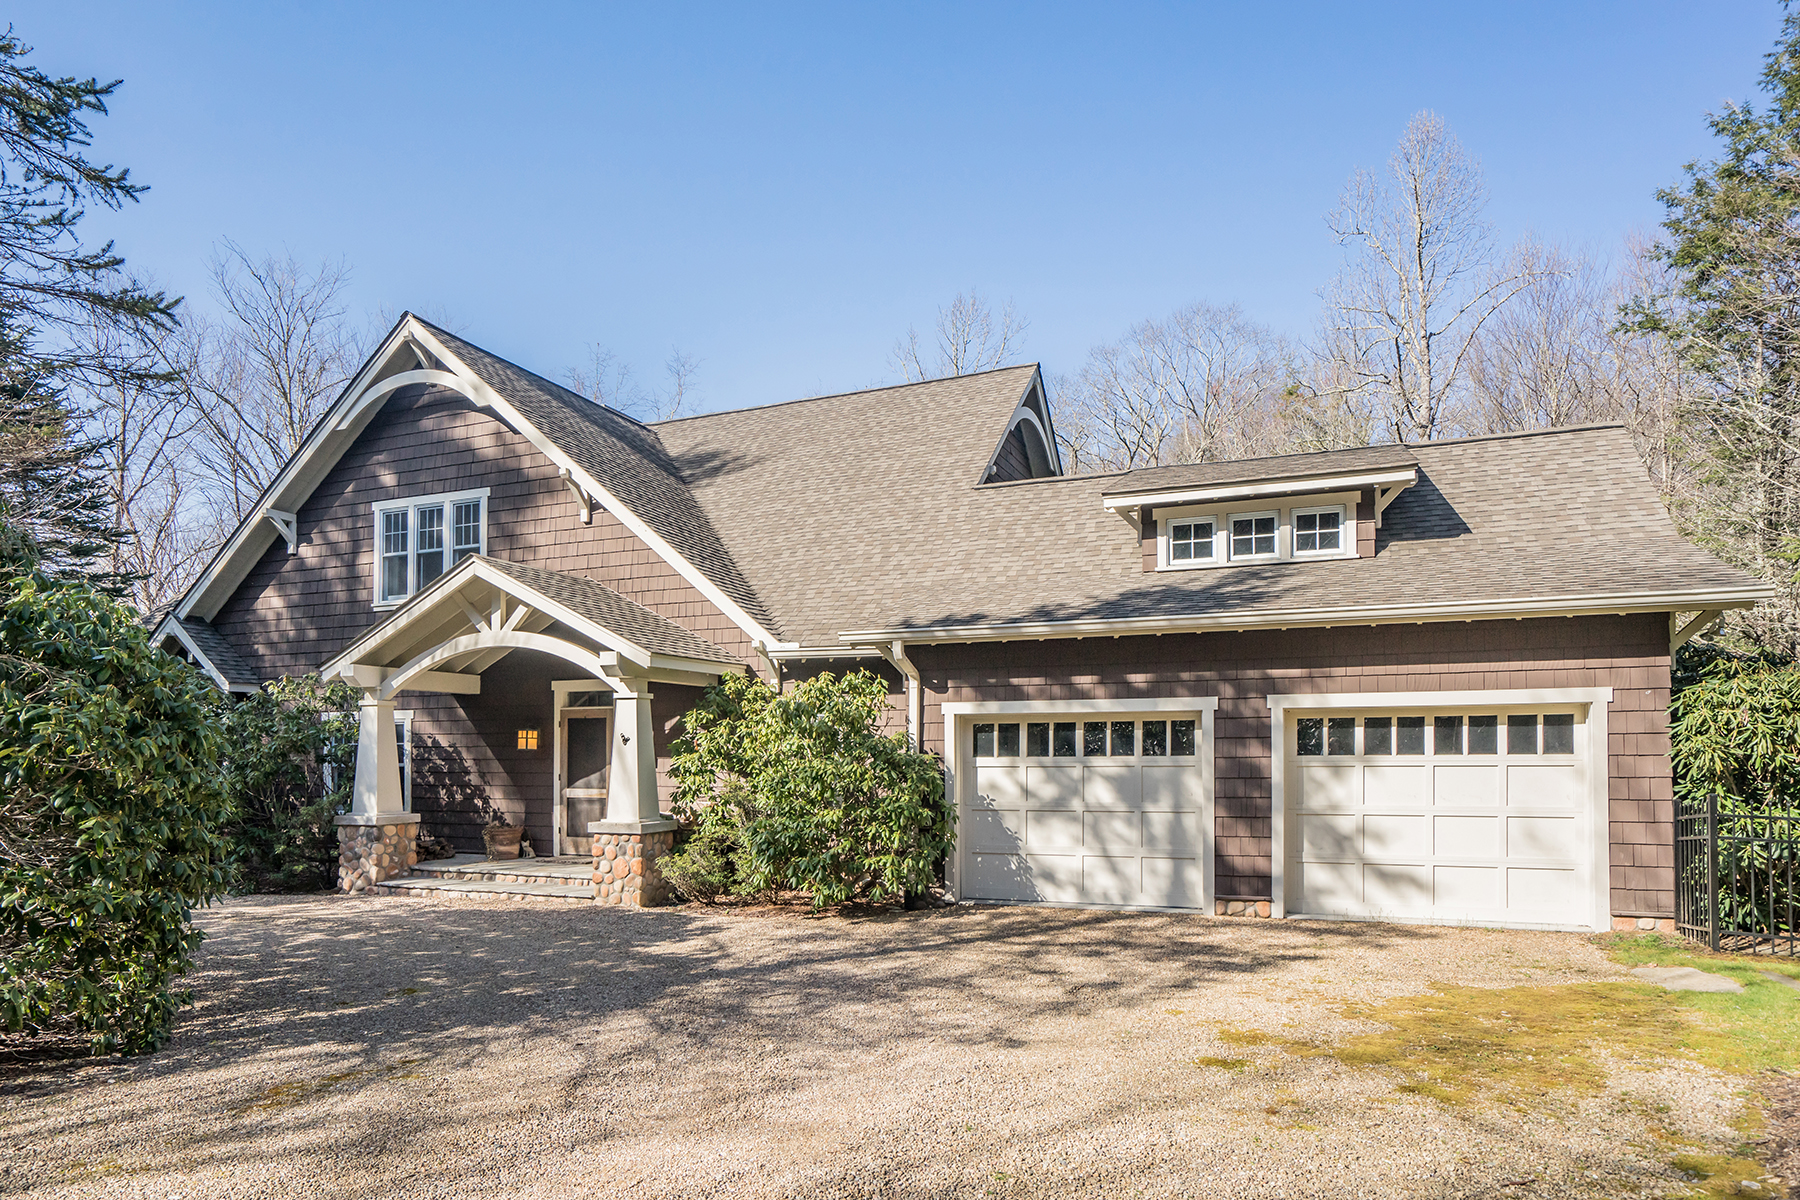 Single Family Home for Sale at CRYSTAL LAKE - BLOWING ROCK 375 New River Lake Dr, Blowing Rock, North Carolina 28605 United States